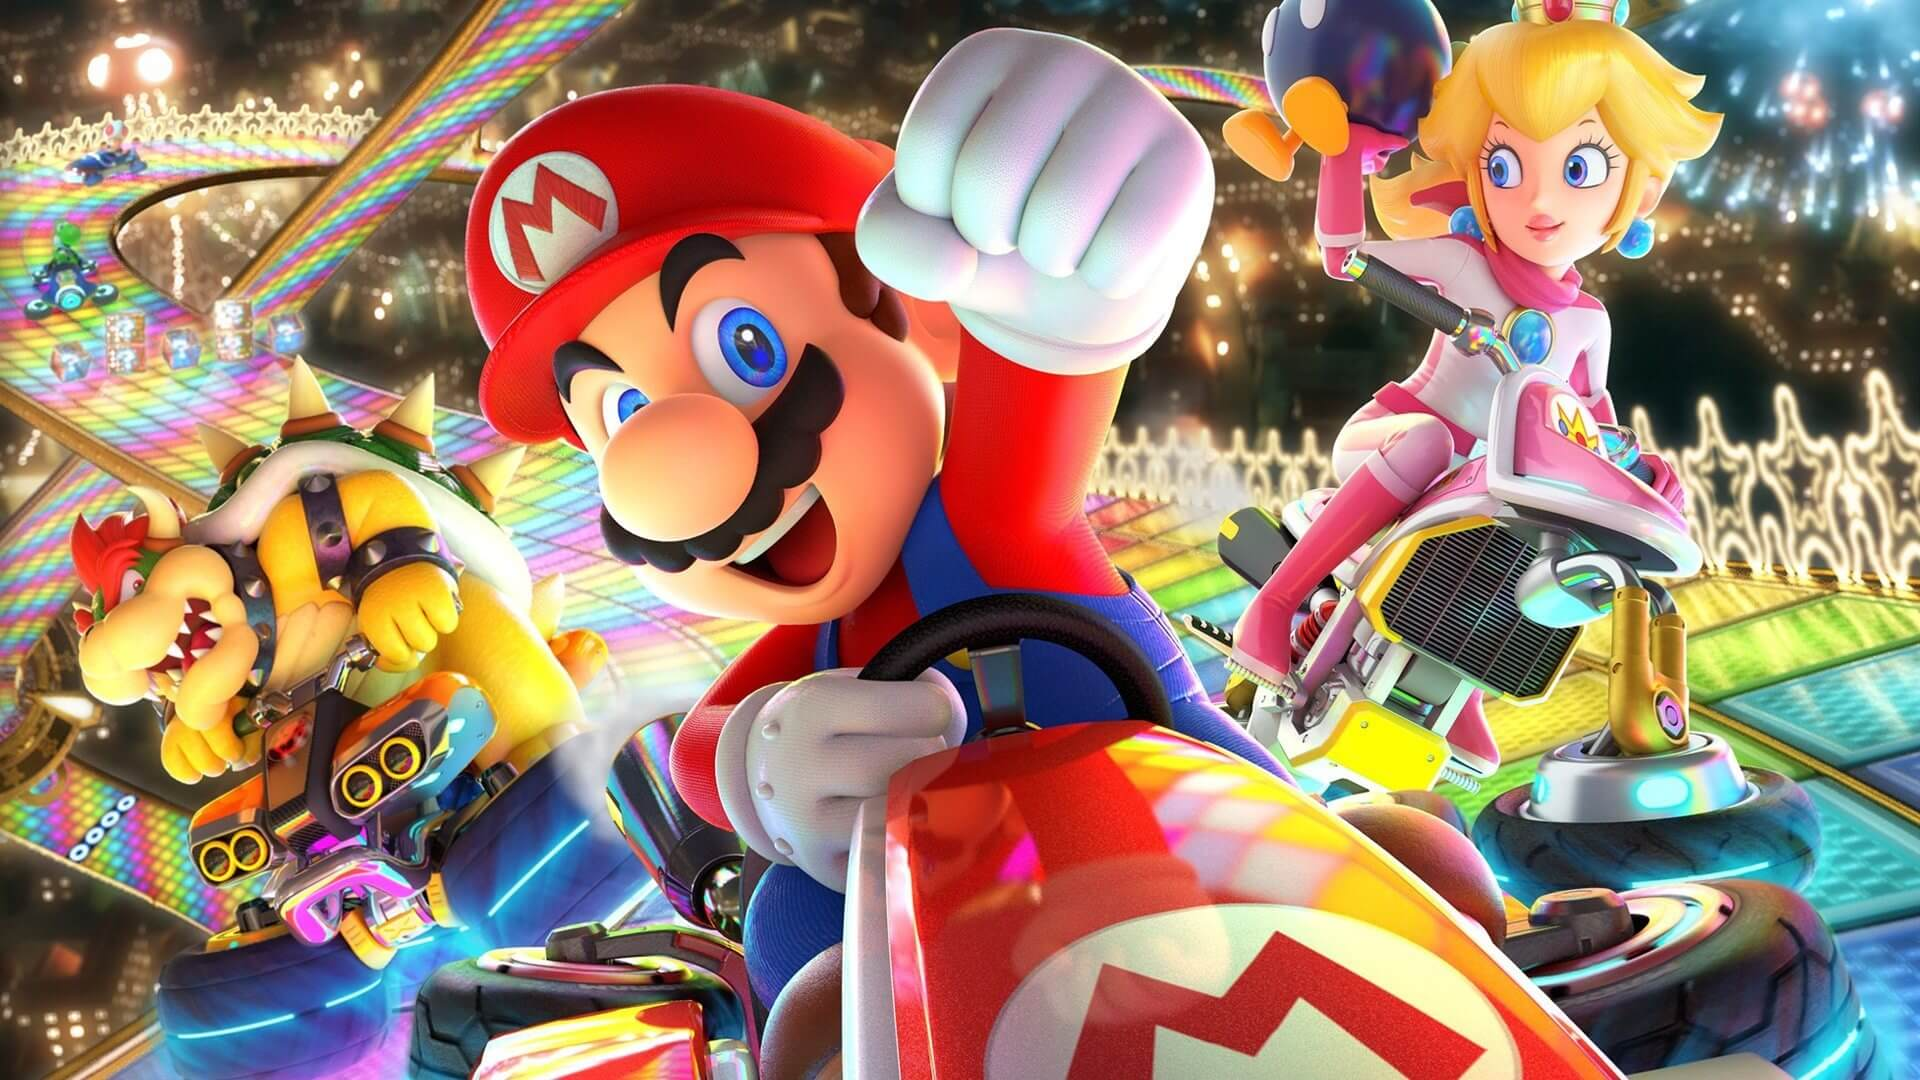 Mario kart 8 deluxe mario bowser and peach 1072